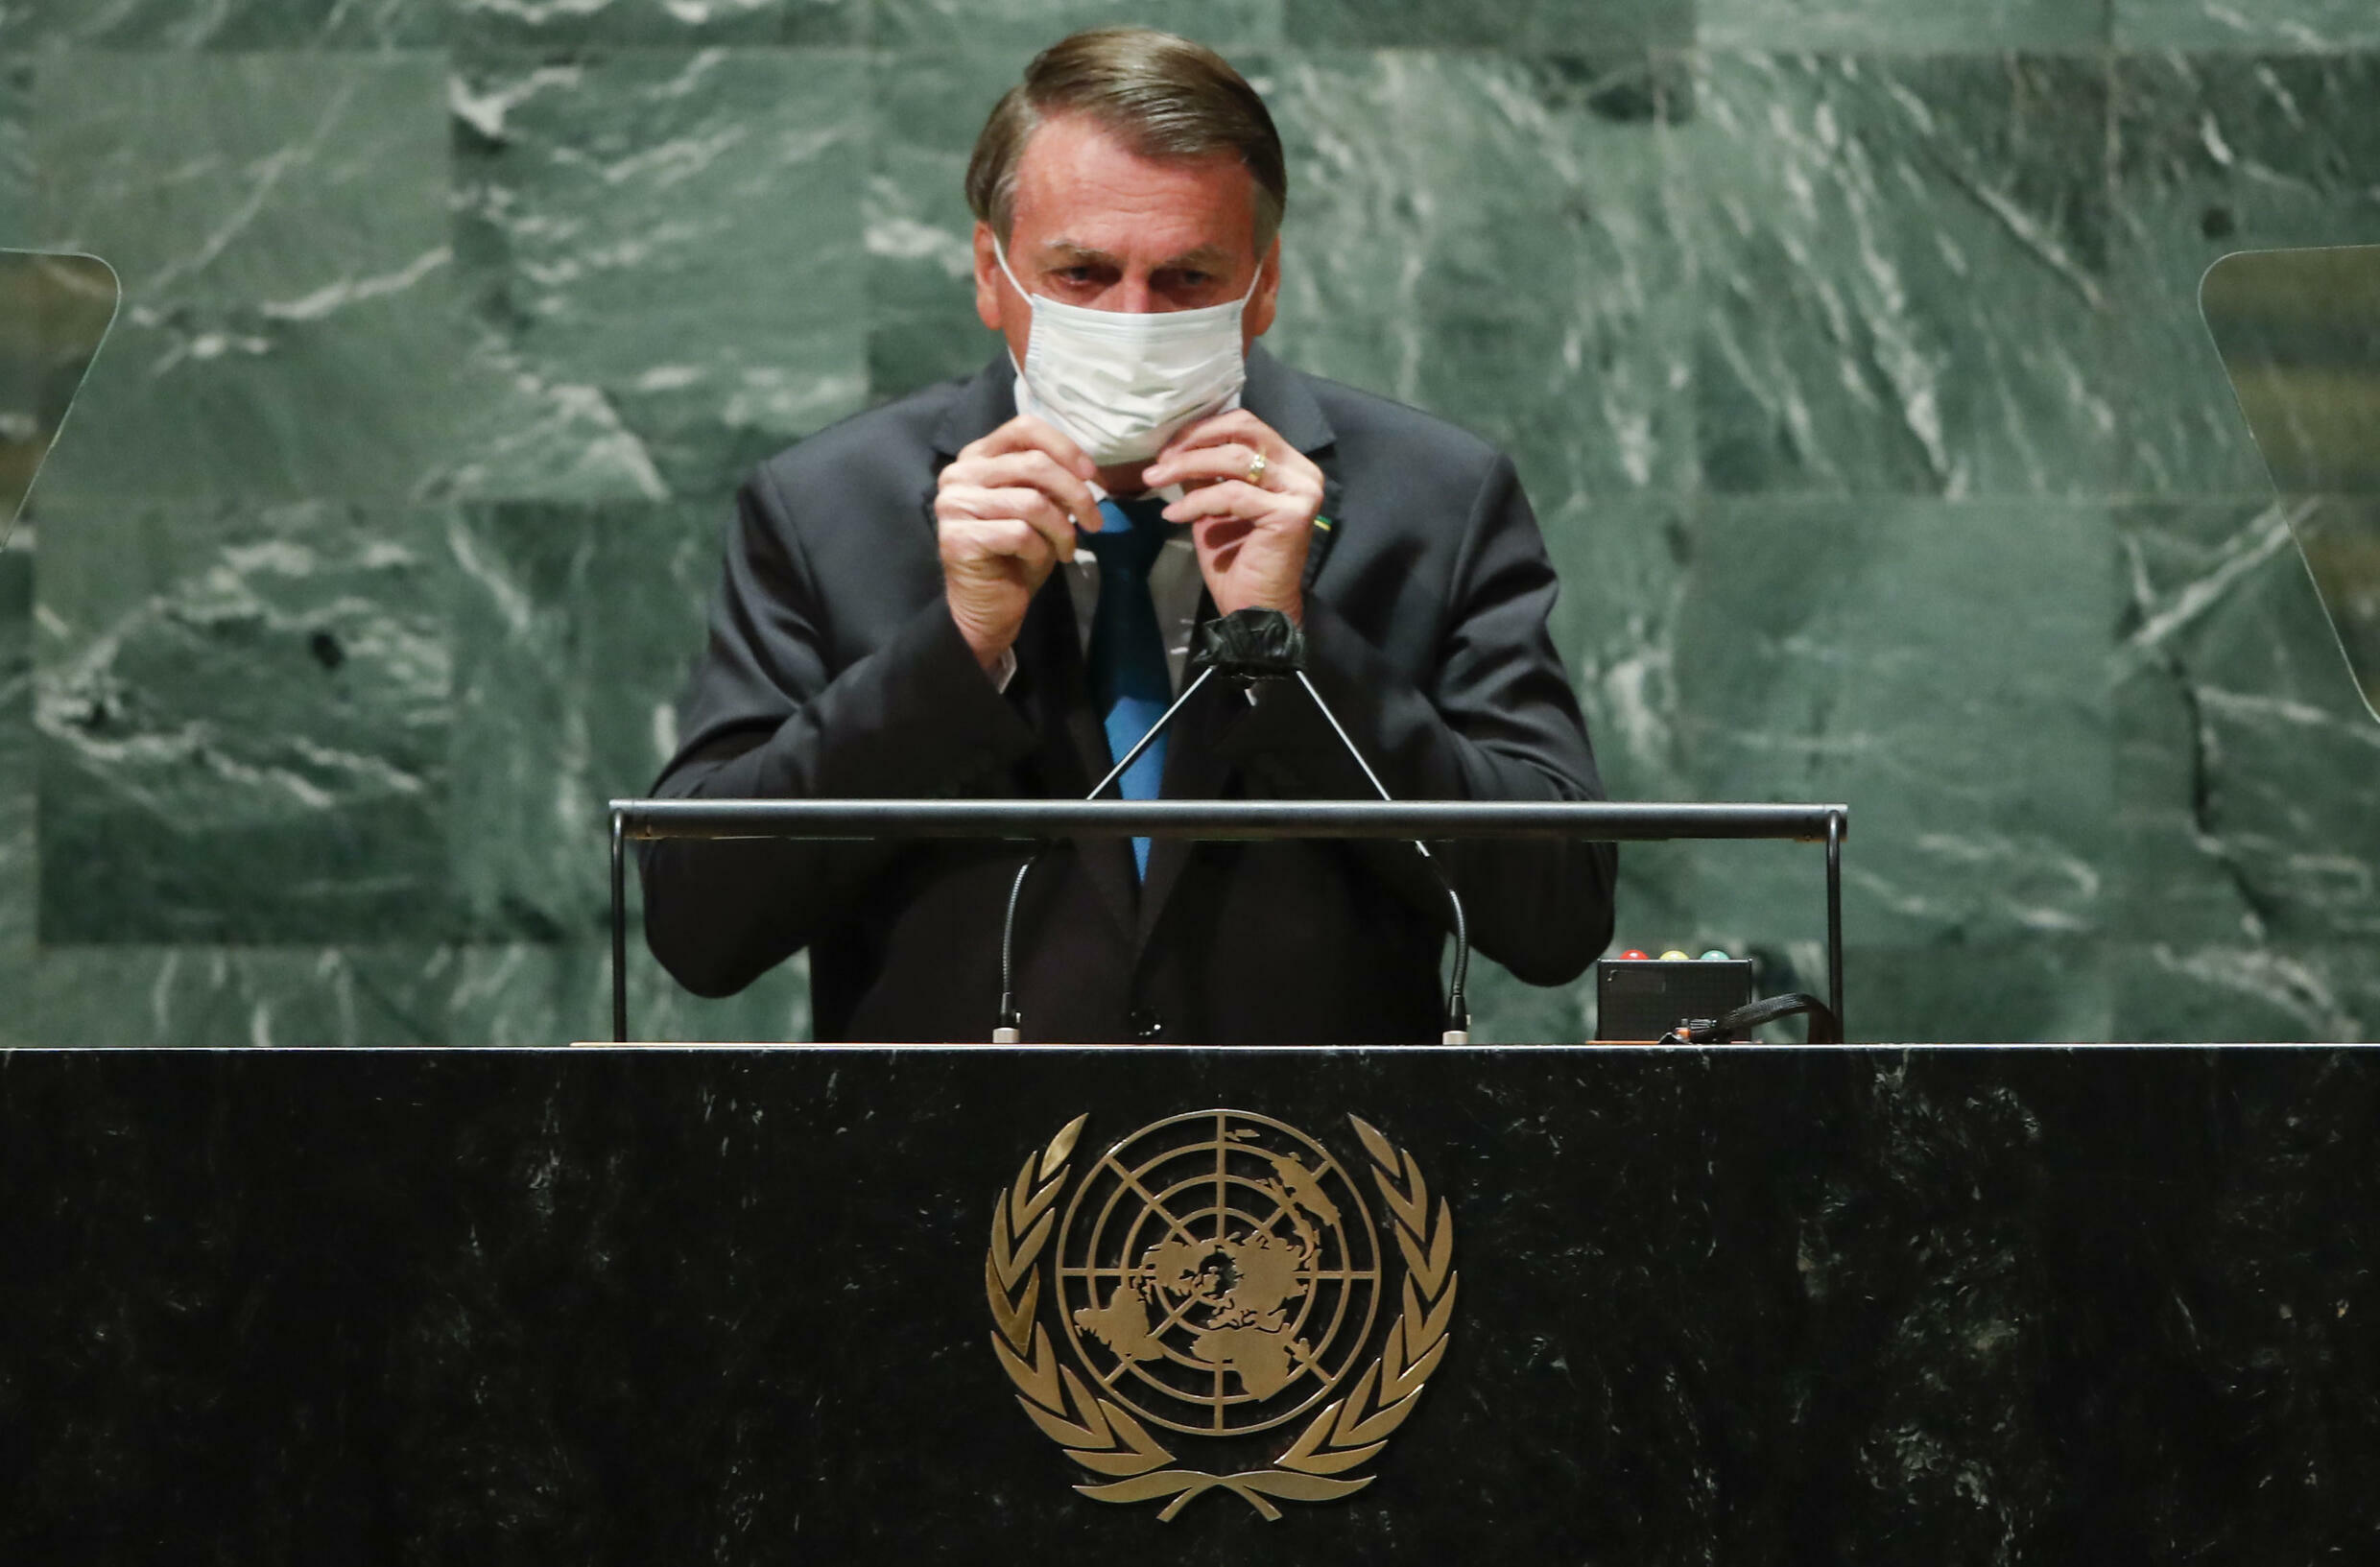 Brazil's President Jair Bolsonaro puts facemask back on after addressing the UN General Assembly on September 21, 2021